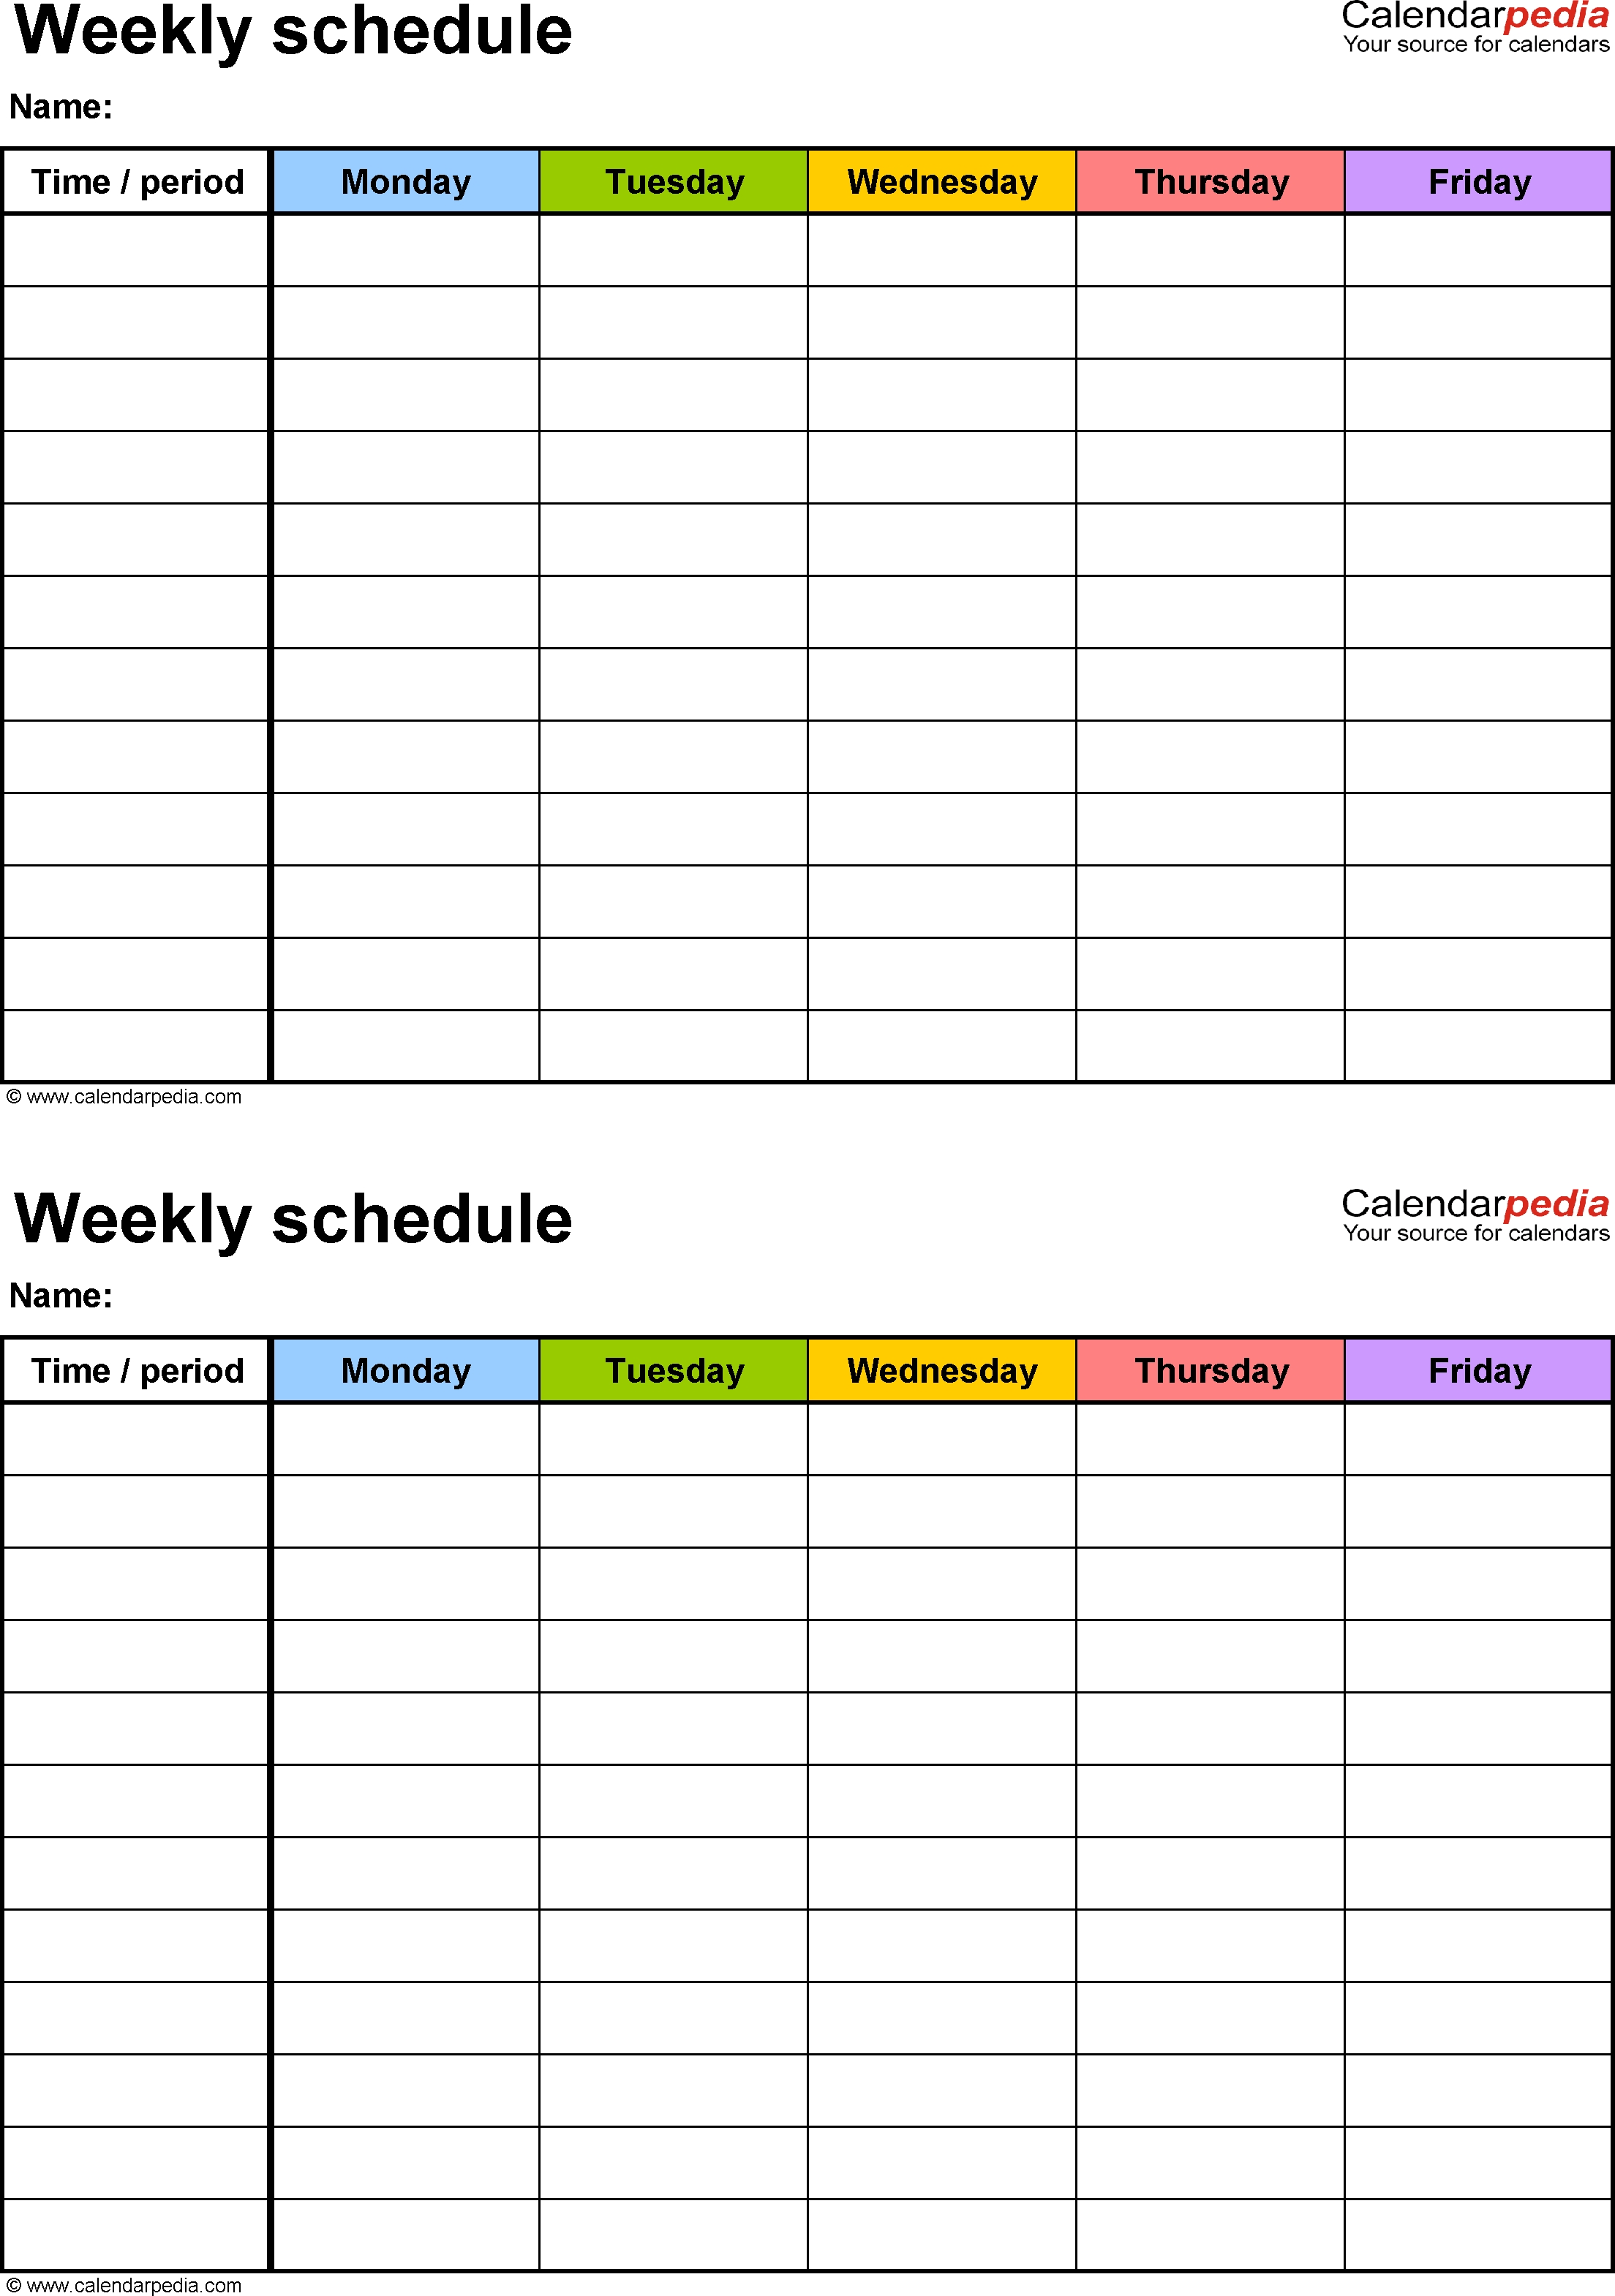 Free Weekly Schedule Templates For Word - 18 Templates in 7 Day Calendar Template Fillable